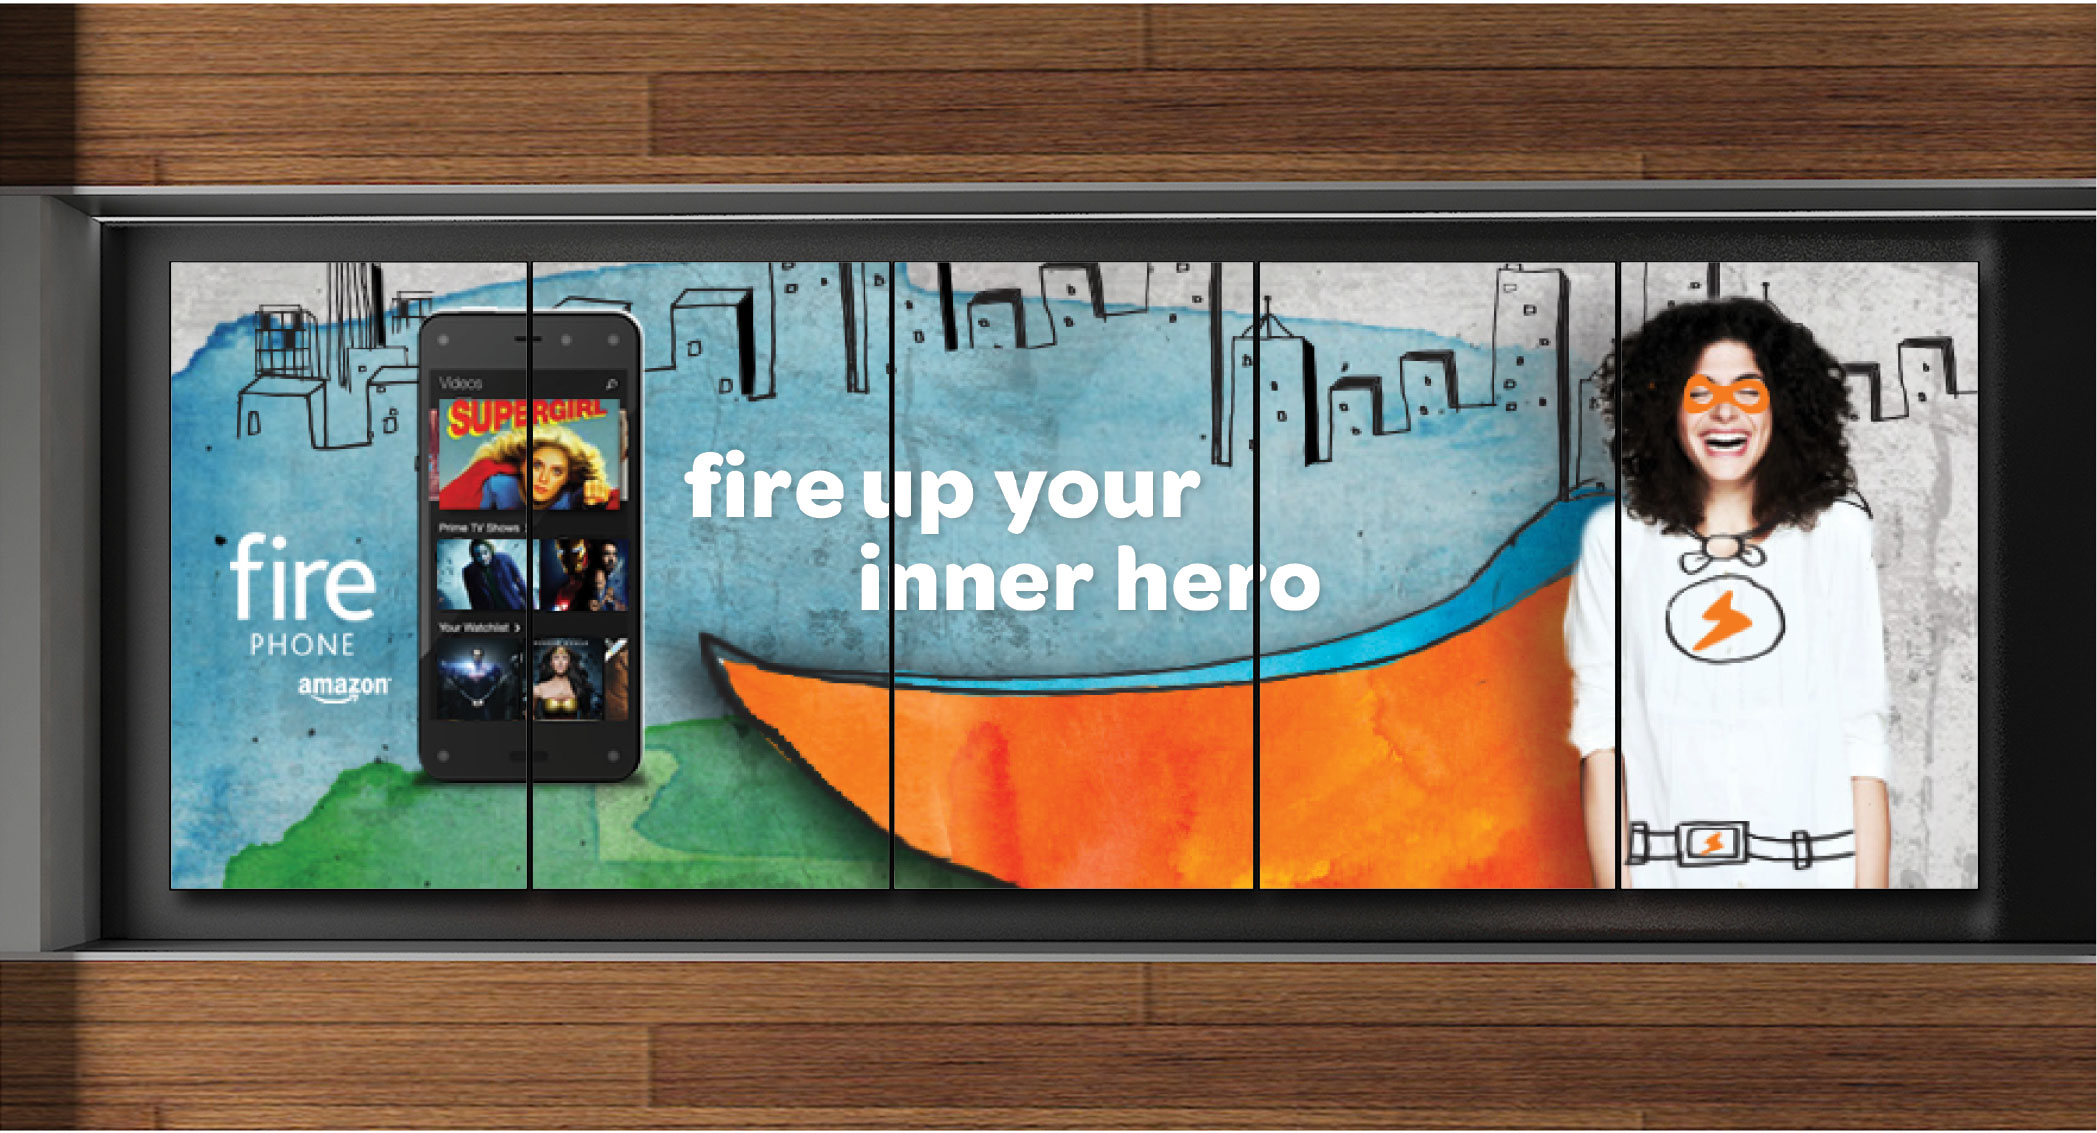 AT&T Retail Experience - Digital signage installation